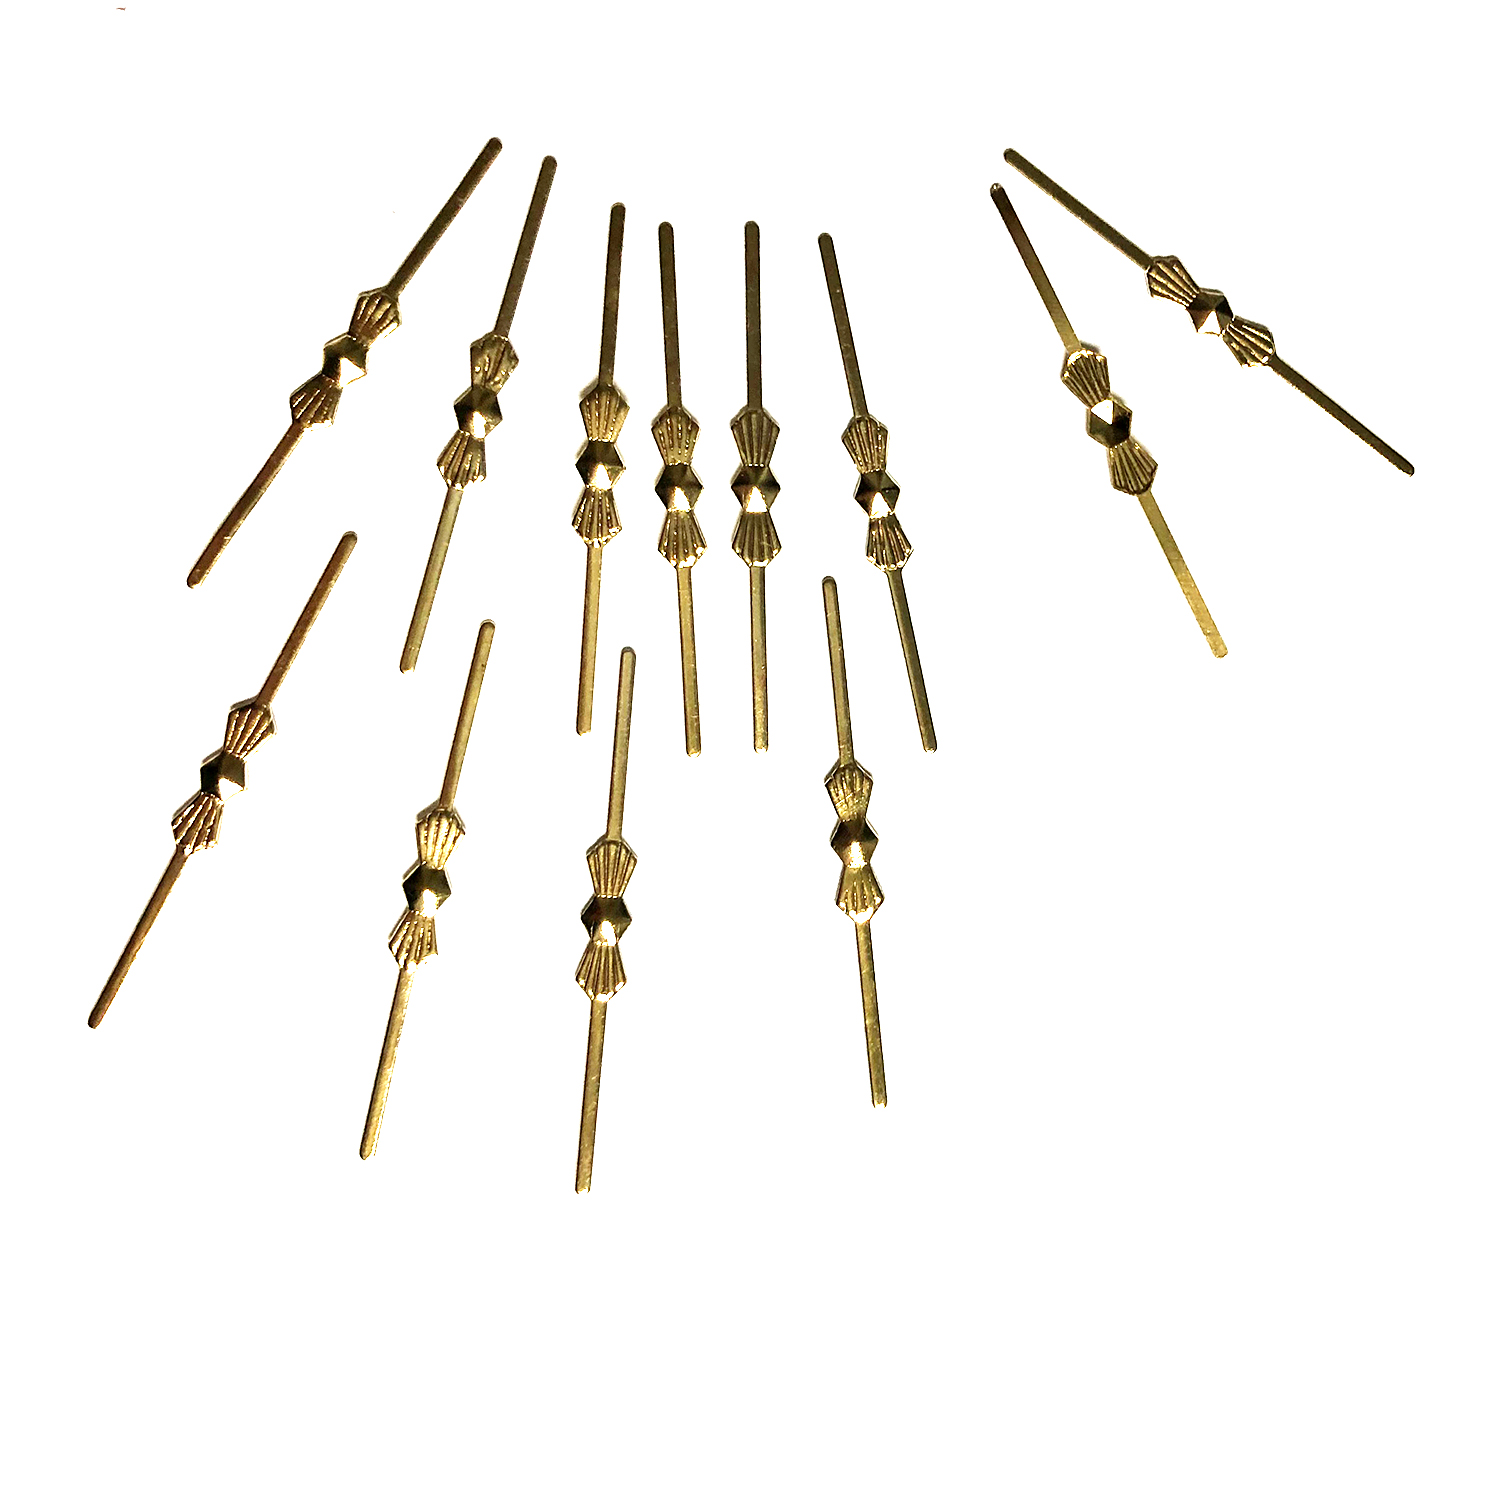 40mm Bow Tie Connectors, GOLD  (12 pack)